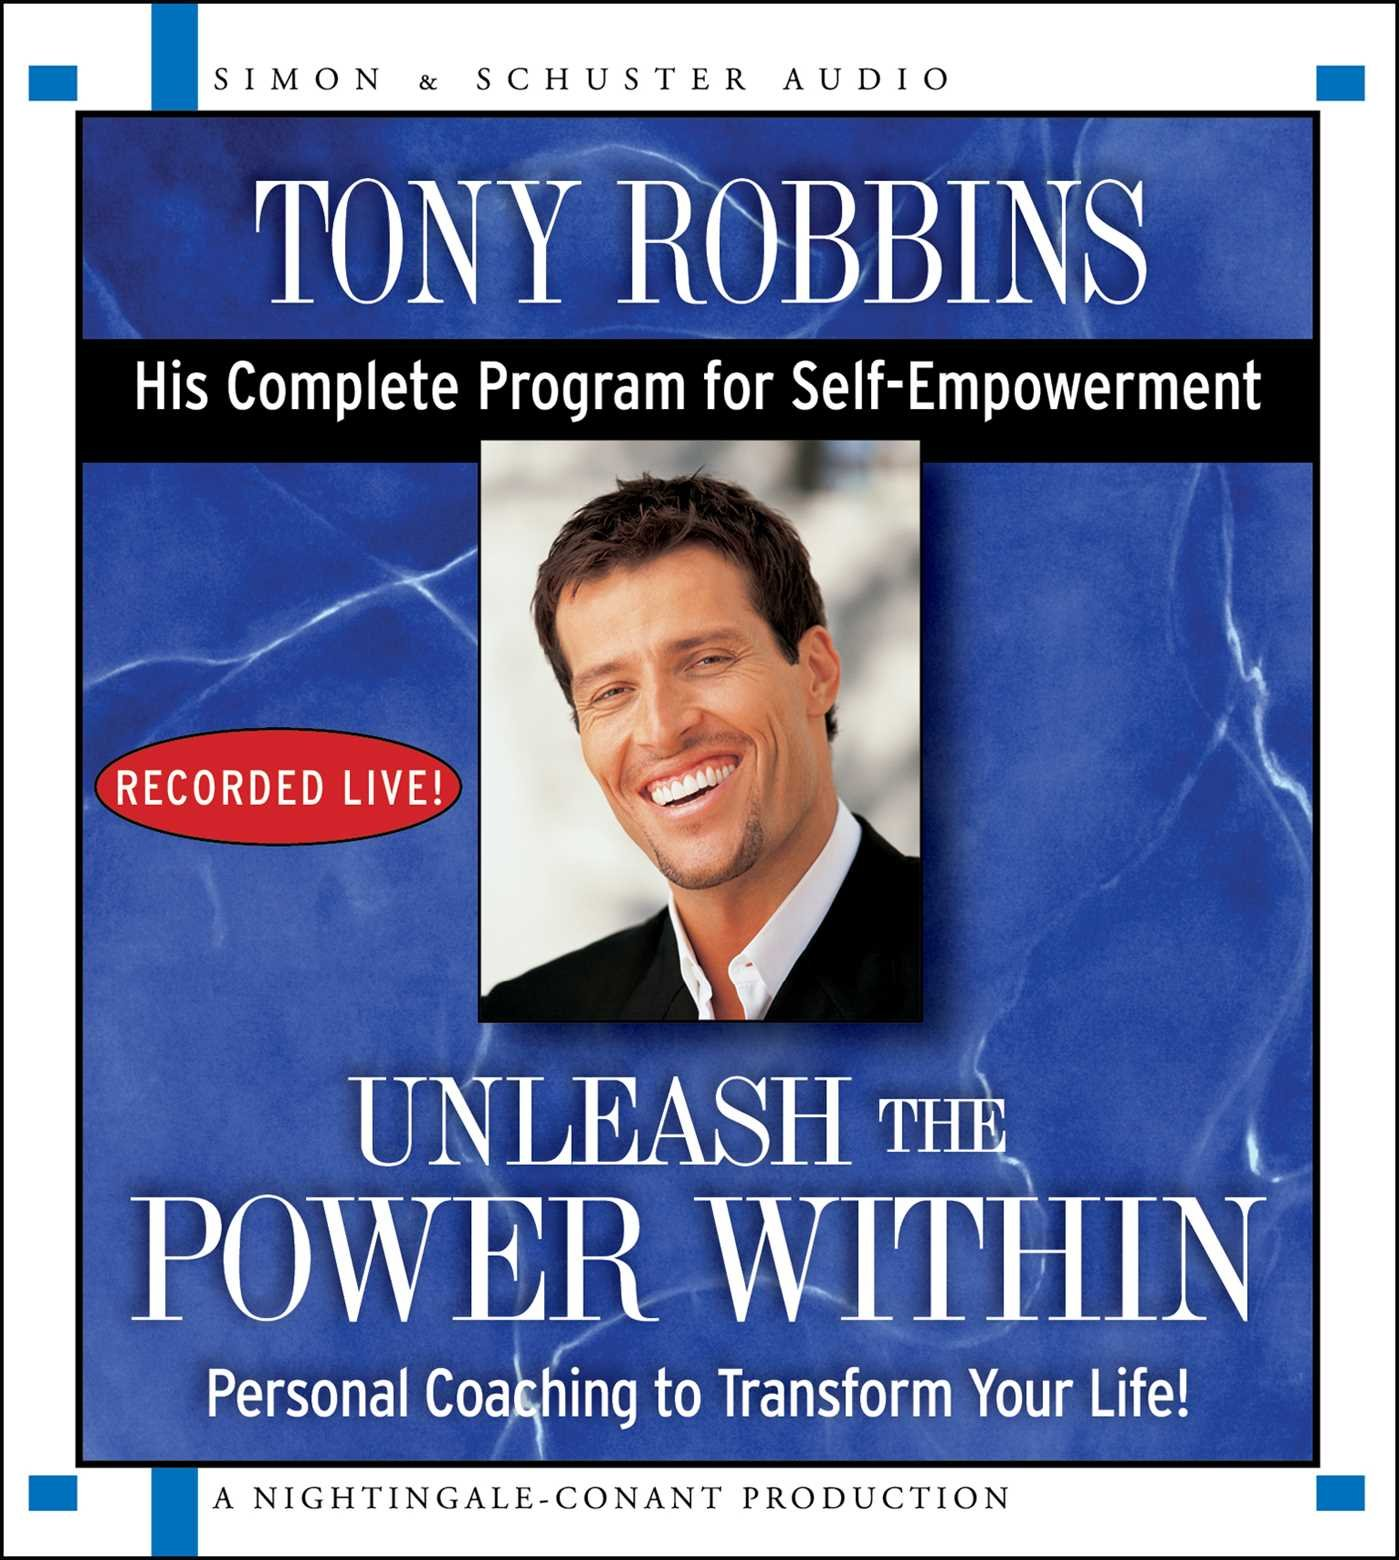 Unleash the Power Within: Personal Coaching to Transform Your Life! - Tony Robbins - quotes, rating, reviews, where to buy